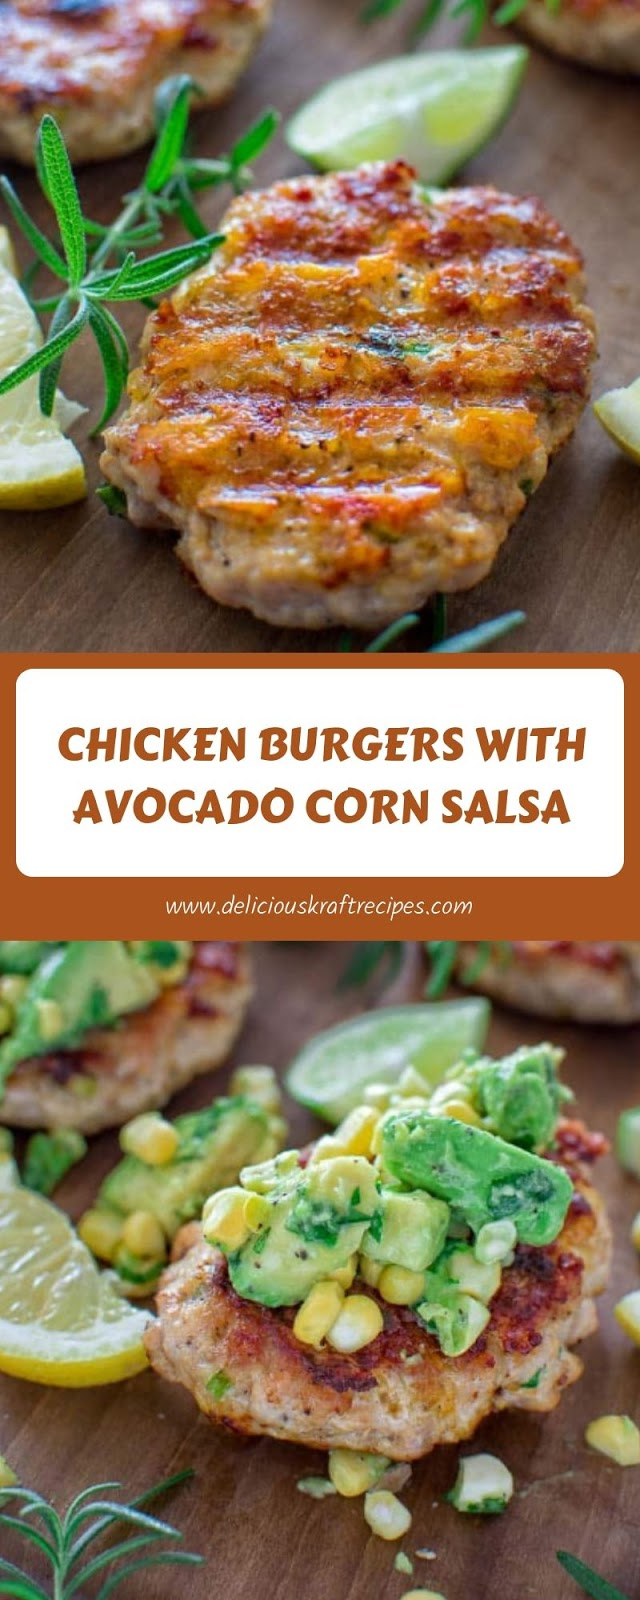 CHICKEN BURGERS WITH AVOCADO CORN SALSA